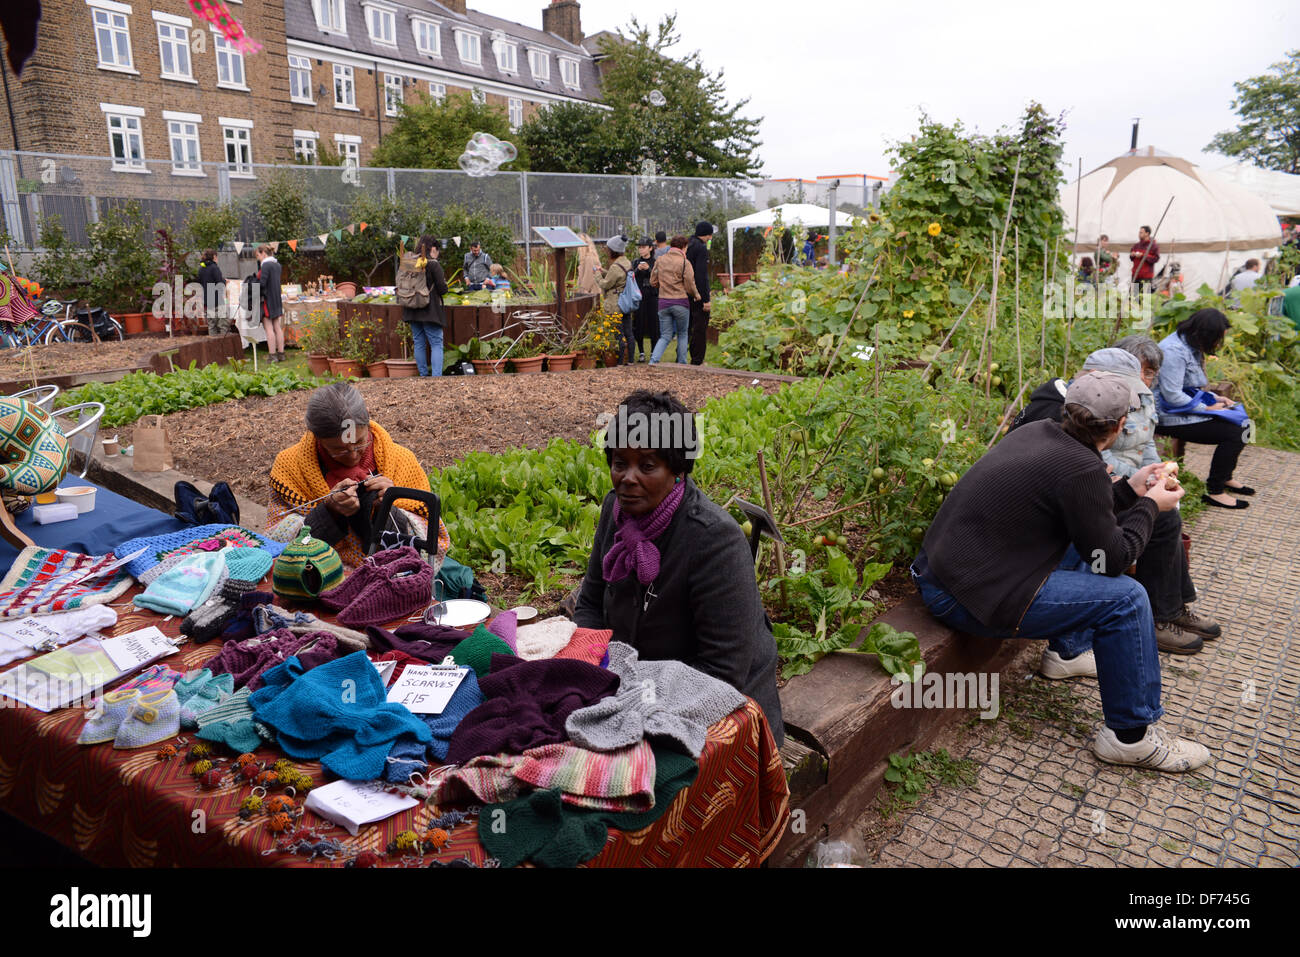 London, UK 29 Sept 2013 : Stall of hand make wooly hat at Spitalfields City Farm. © See Li/Alamy Live News - Stock Image